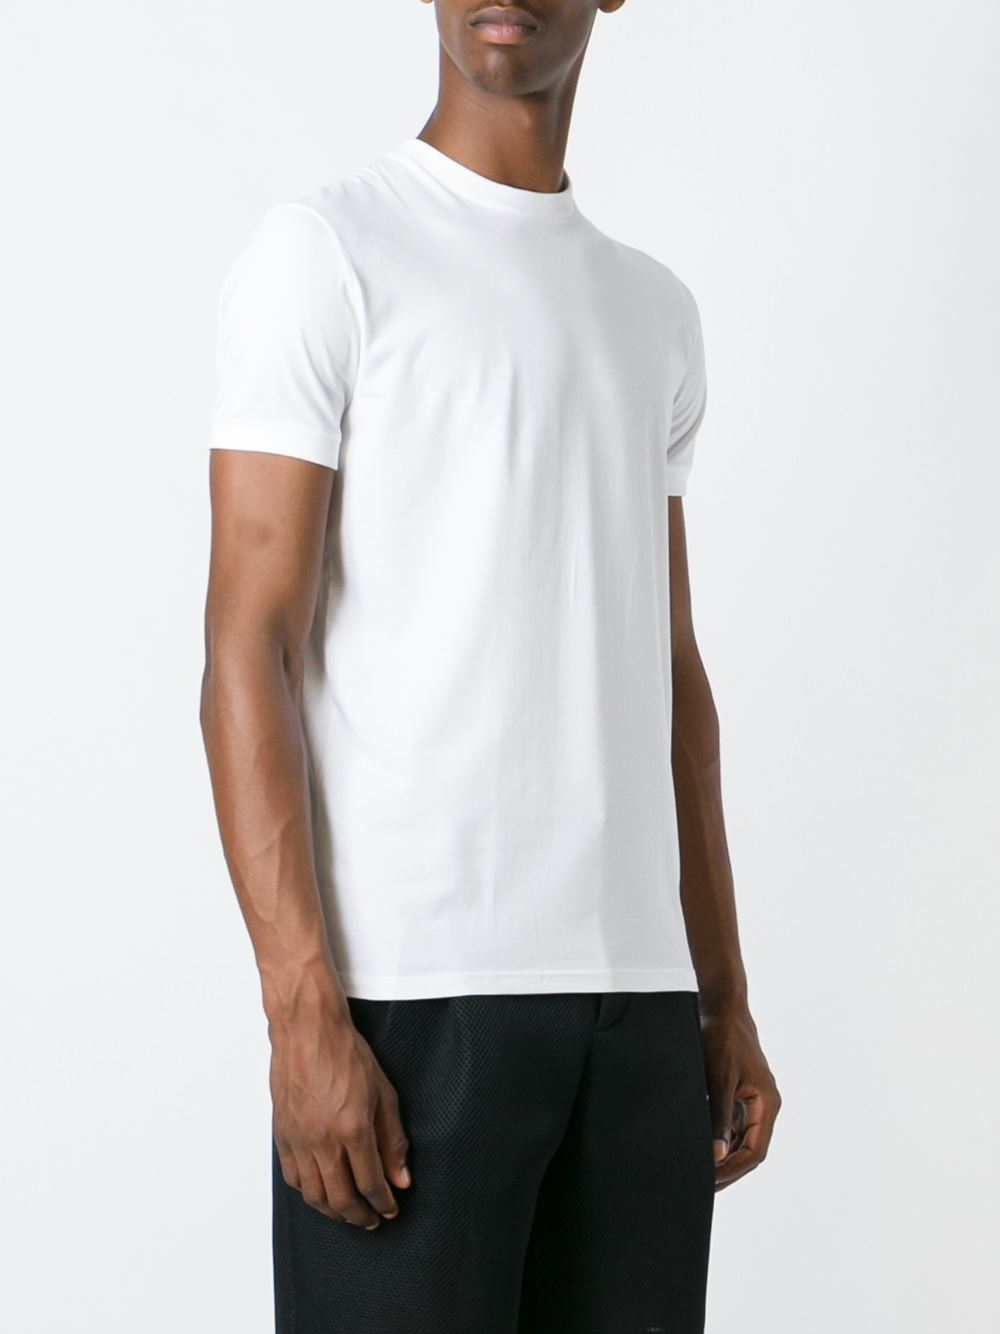 Dsquared slim fit t shirt in white for men lyst for Slim fit white t shirt